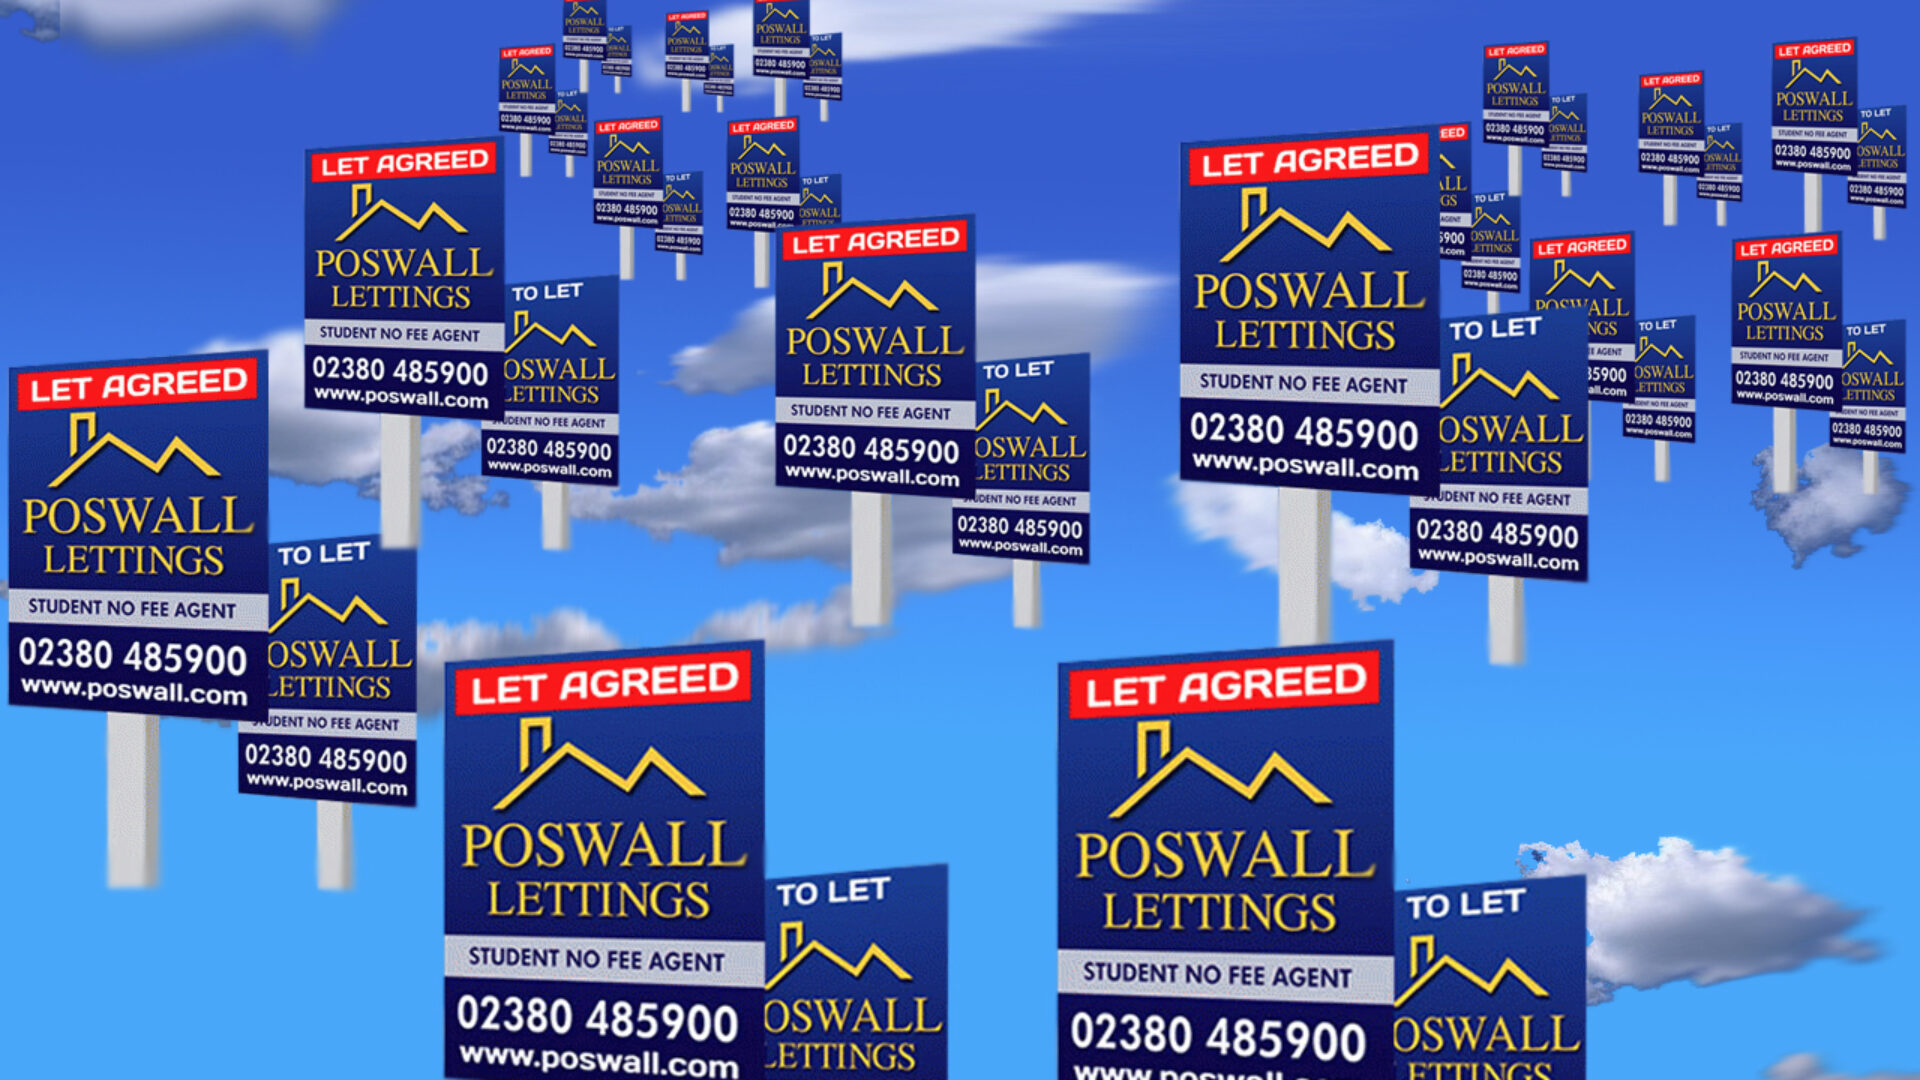 Poswall Lettings